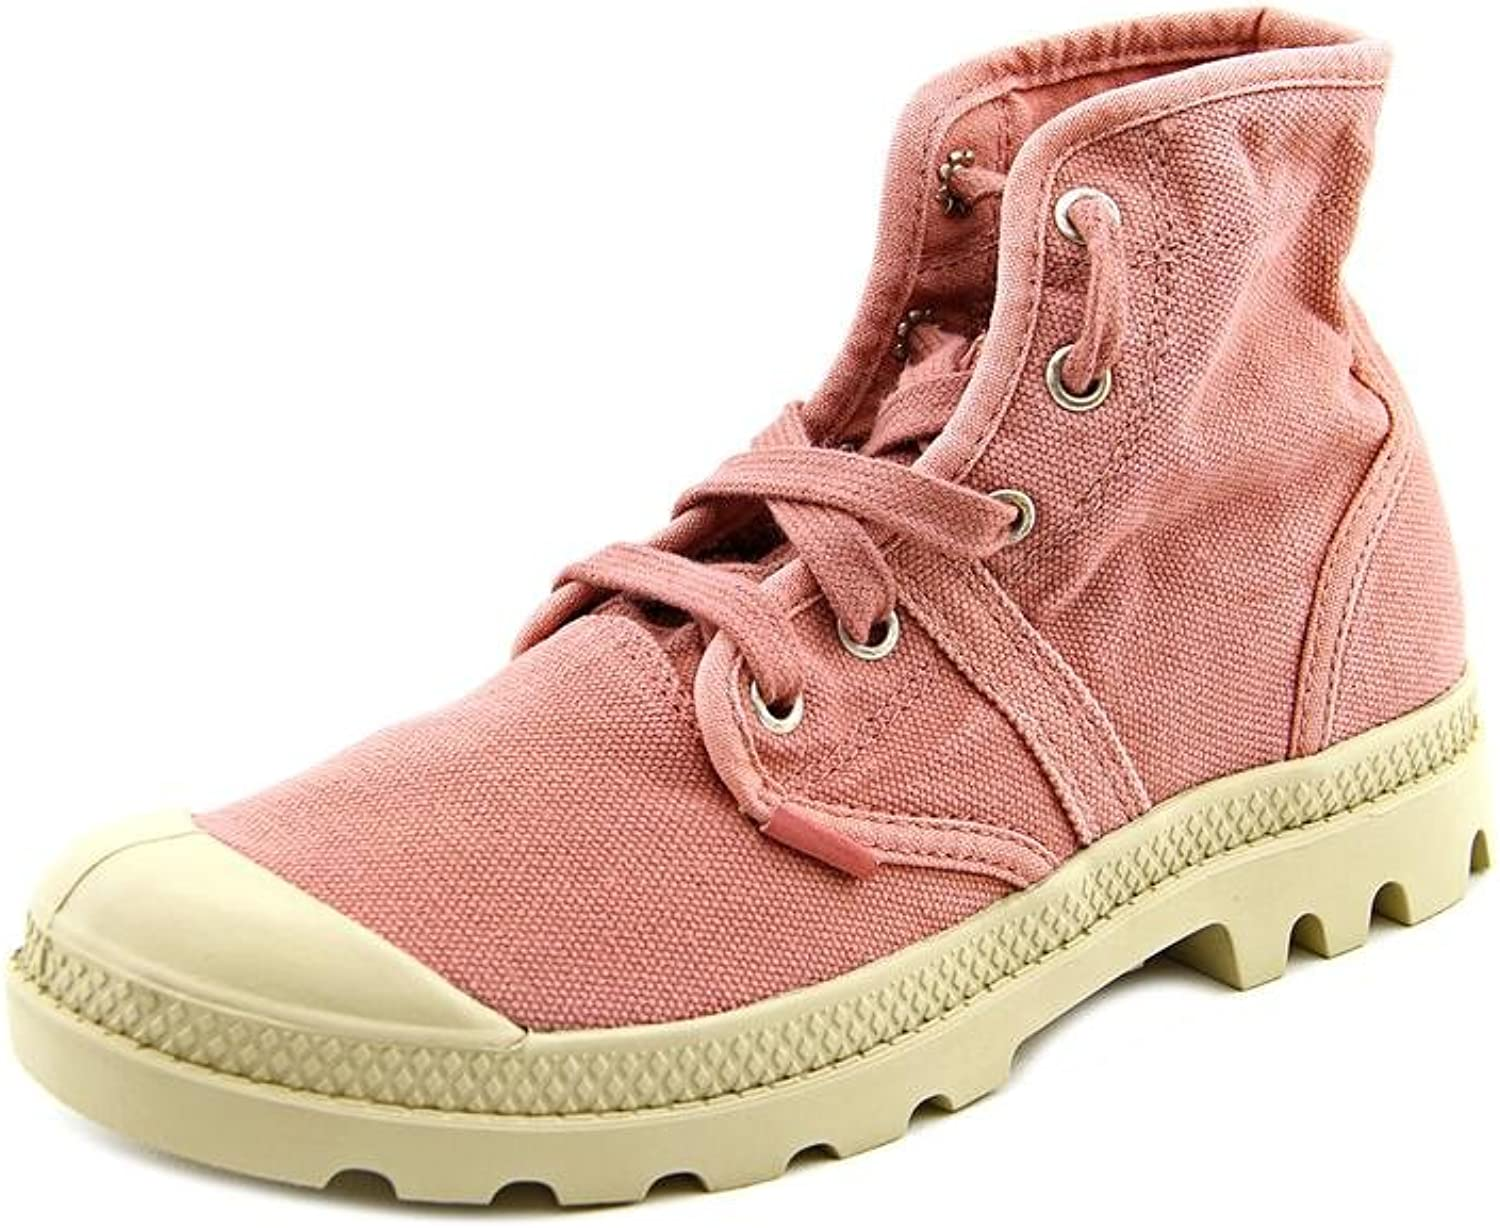 Palladium Women's Pallabrouse Pampa Hi Boot